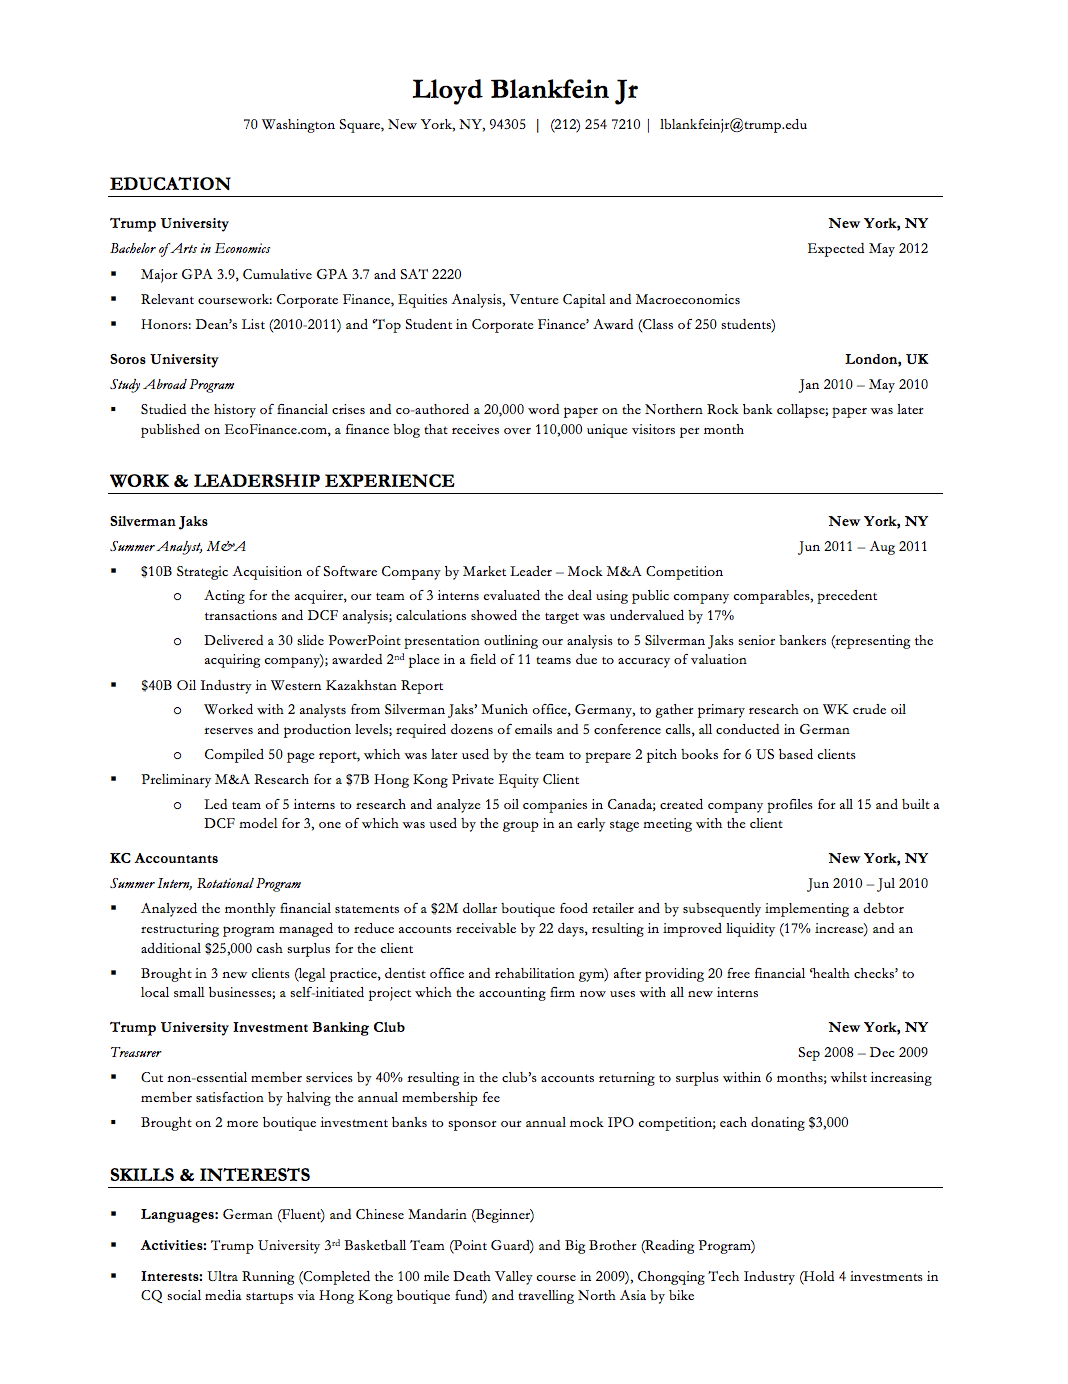 Bartending Resume Templates And Builder Bartender Experience Work